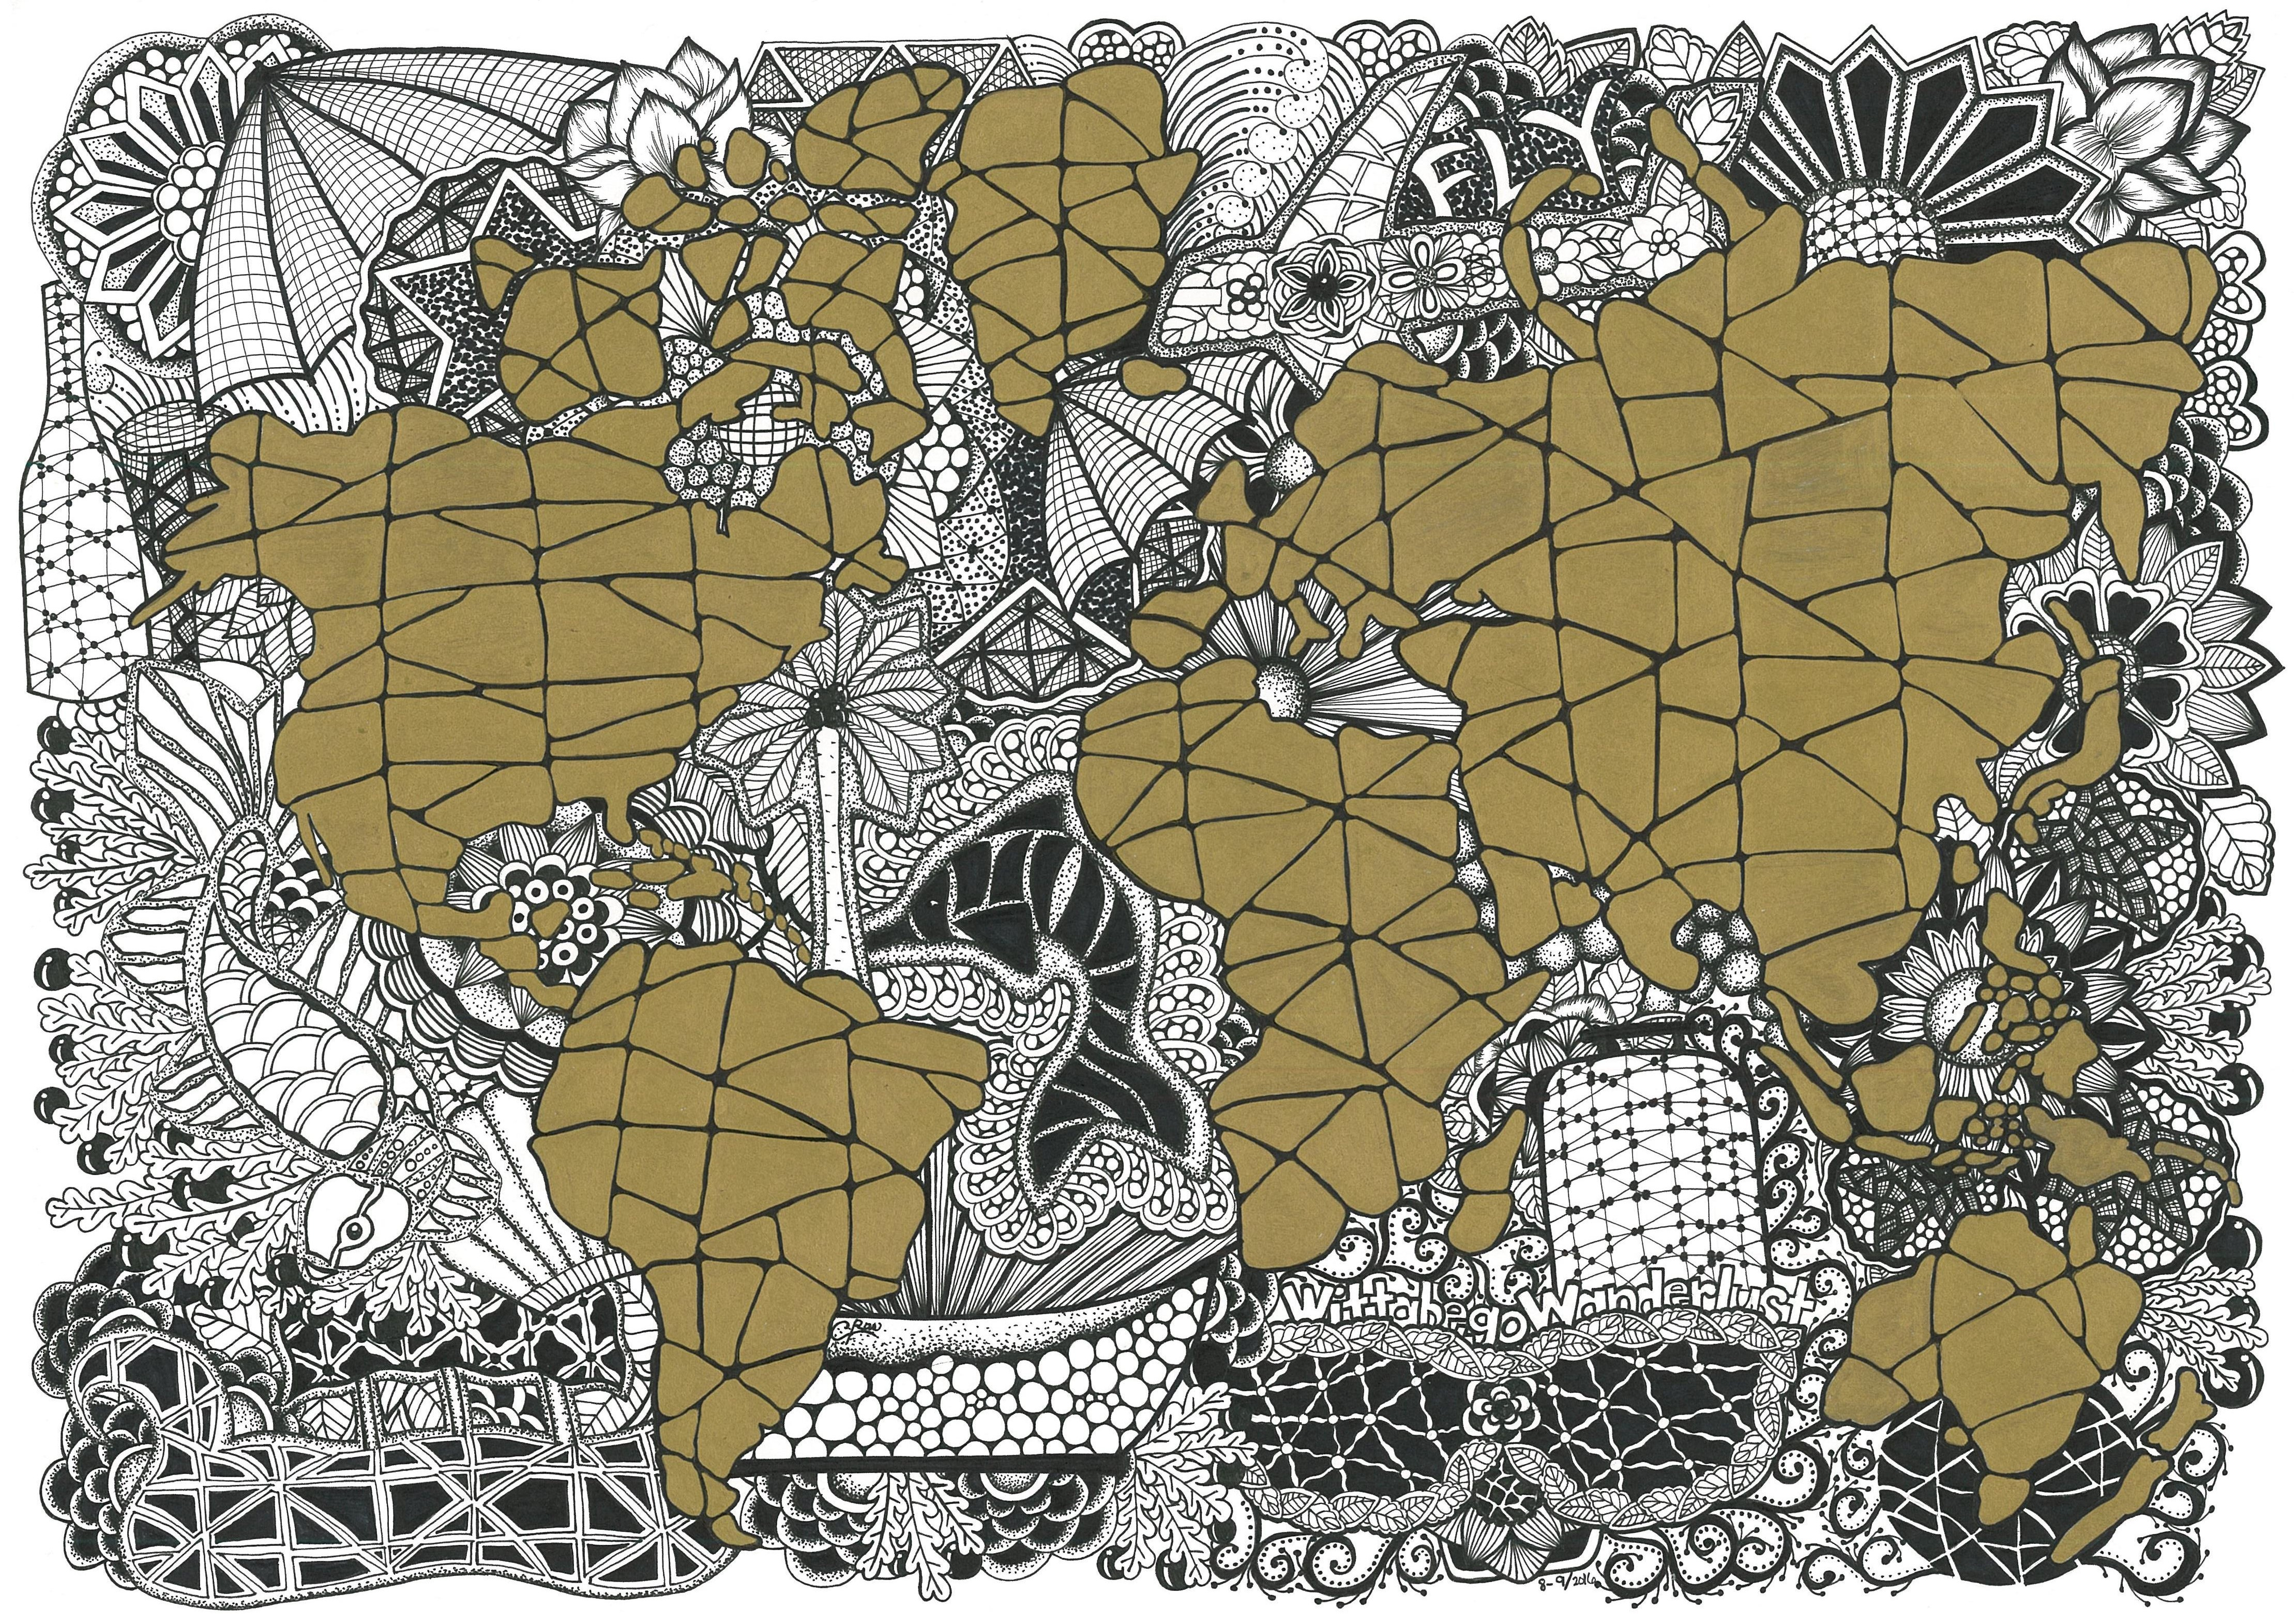 Where Is Tokyo Located On The World Map.Christina Ras Artist In Tokyo Canvas Tokyo Creative Platform